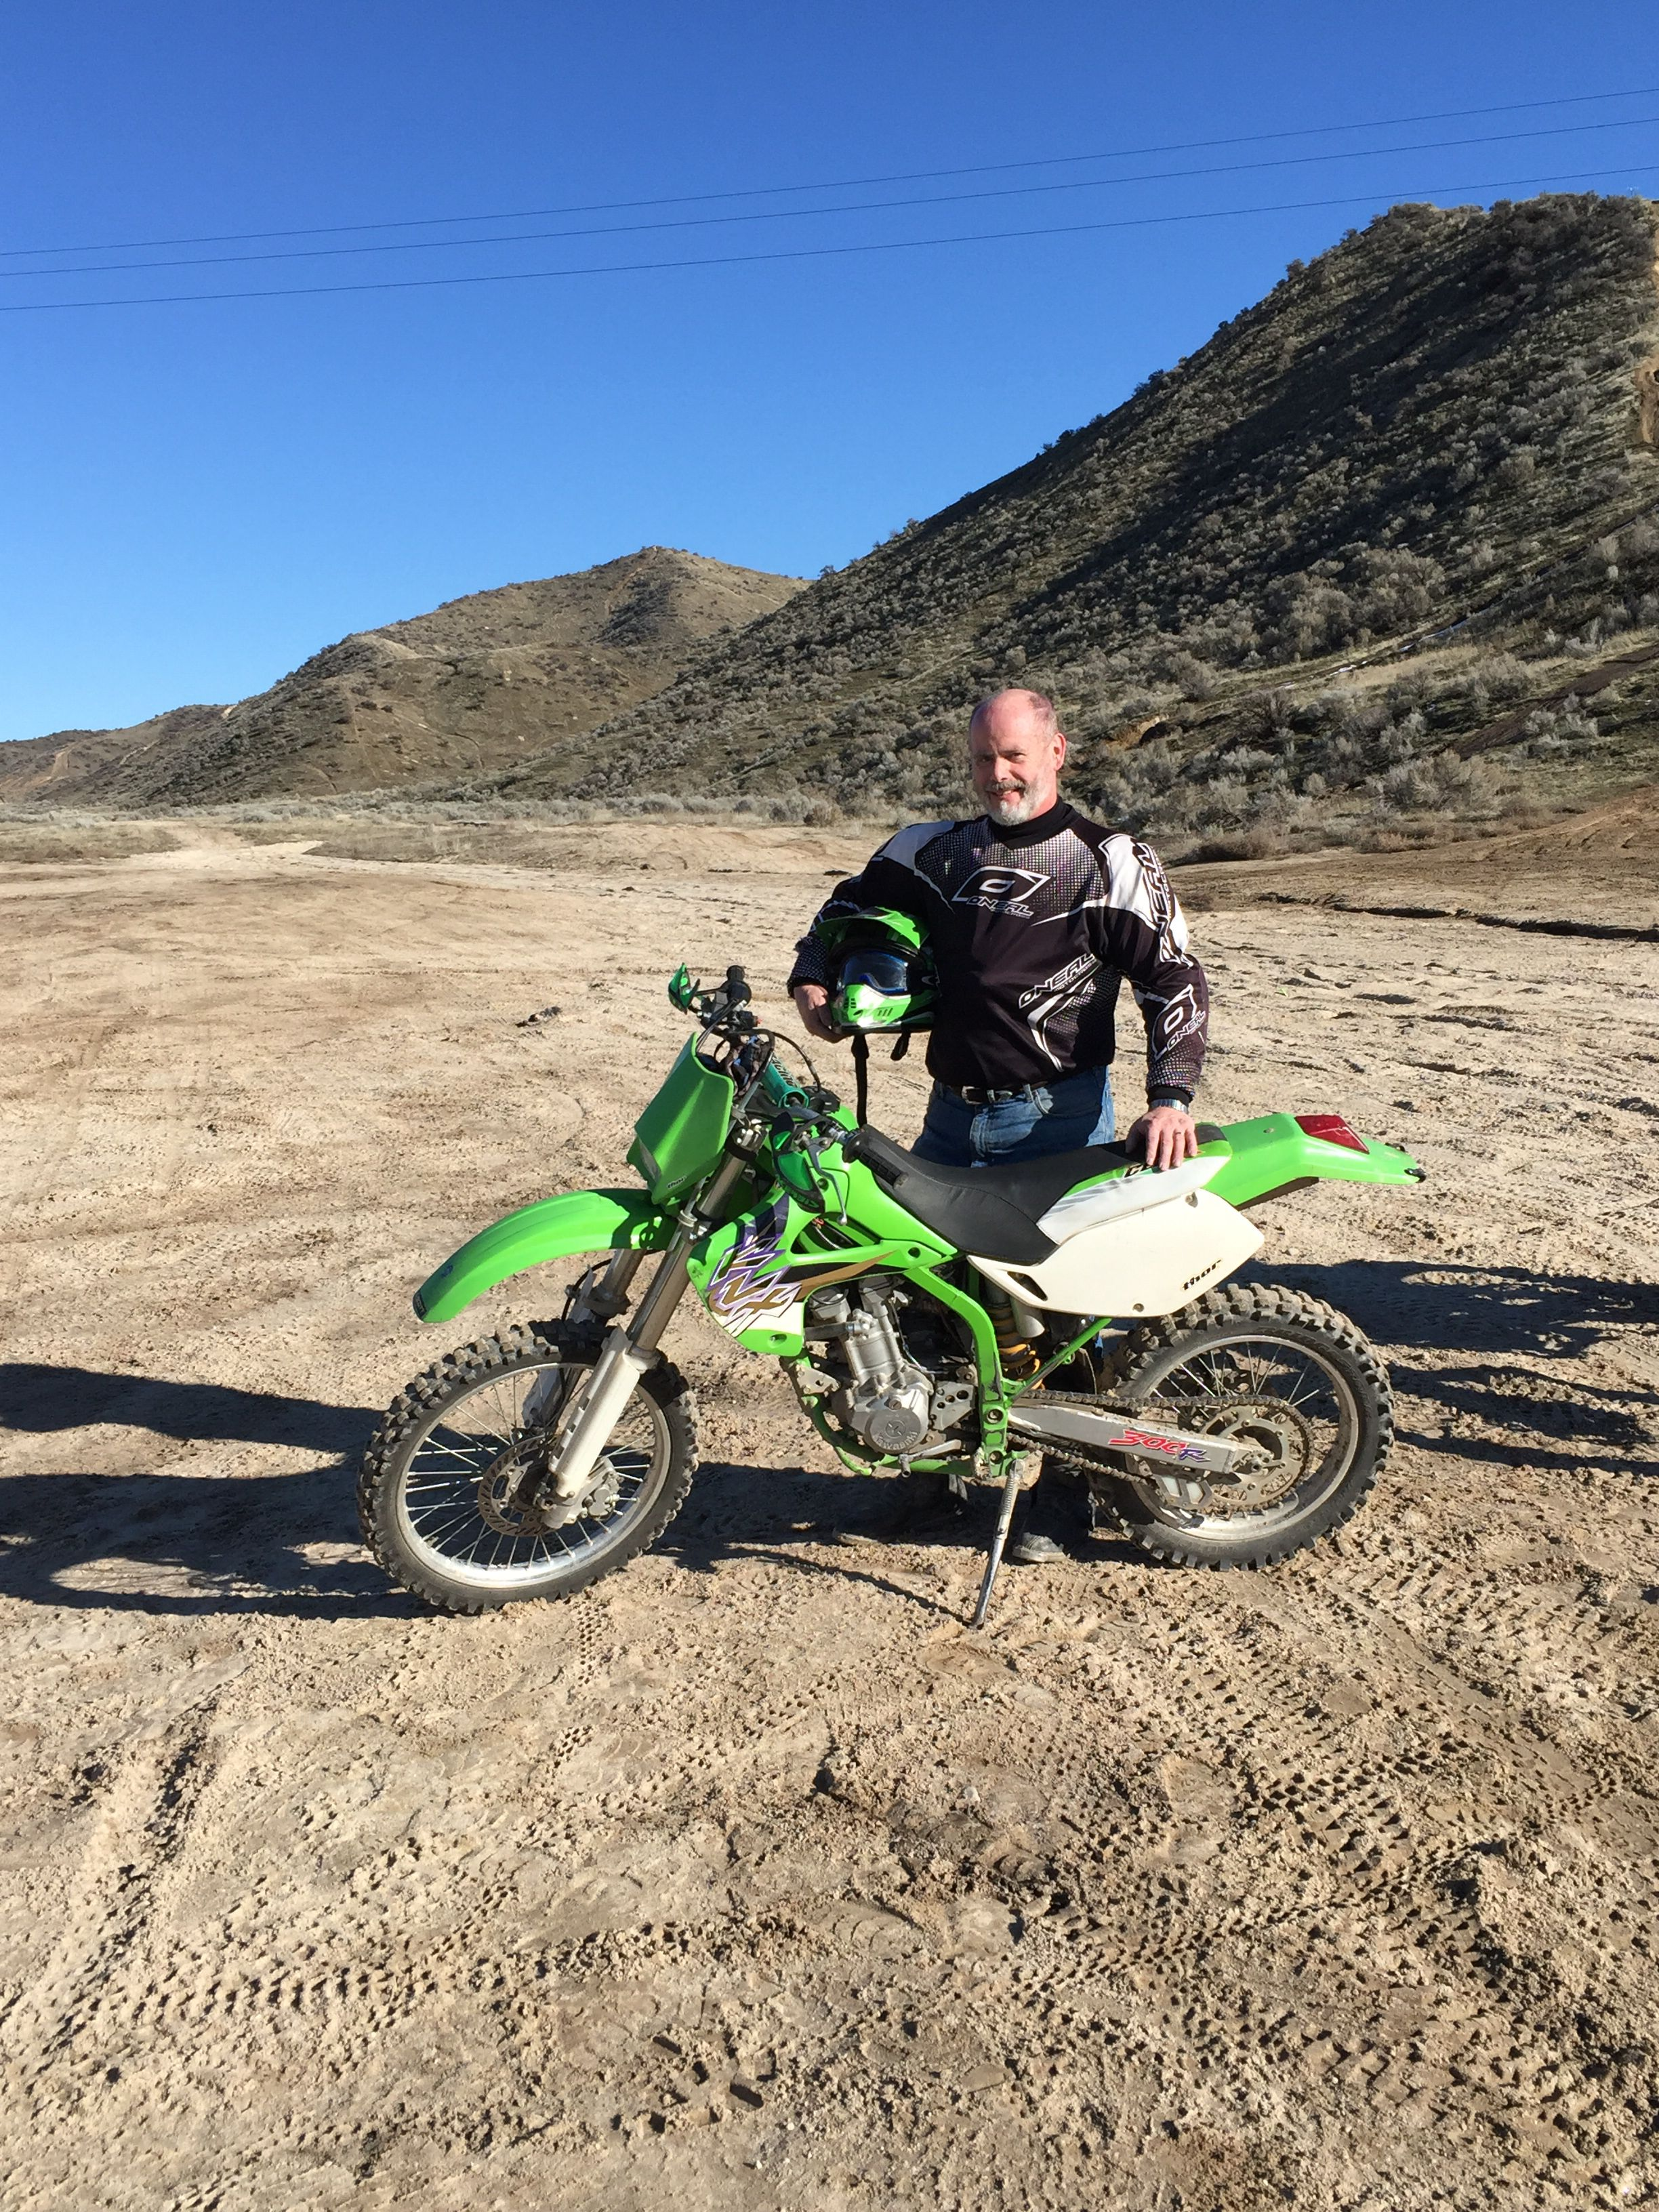 Kevin with KLX 300